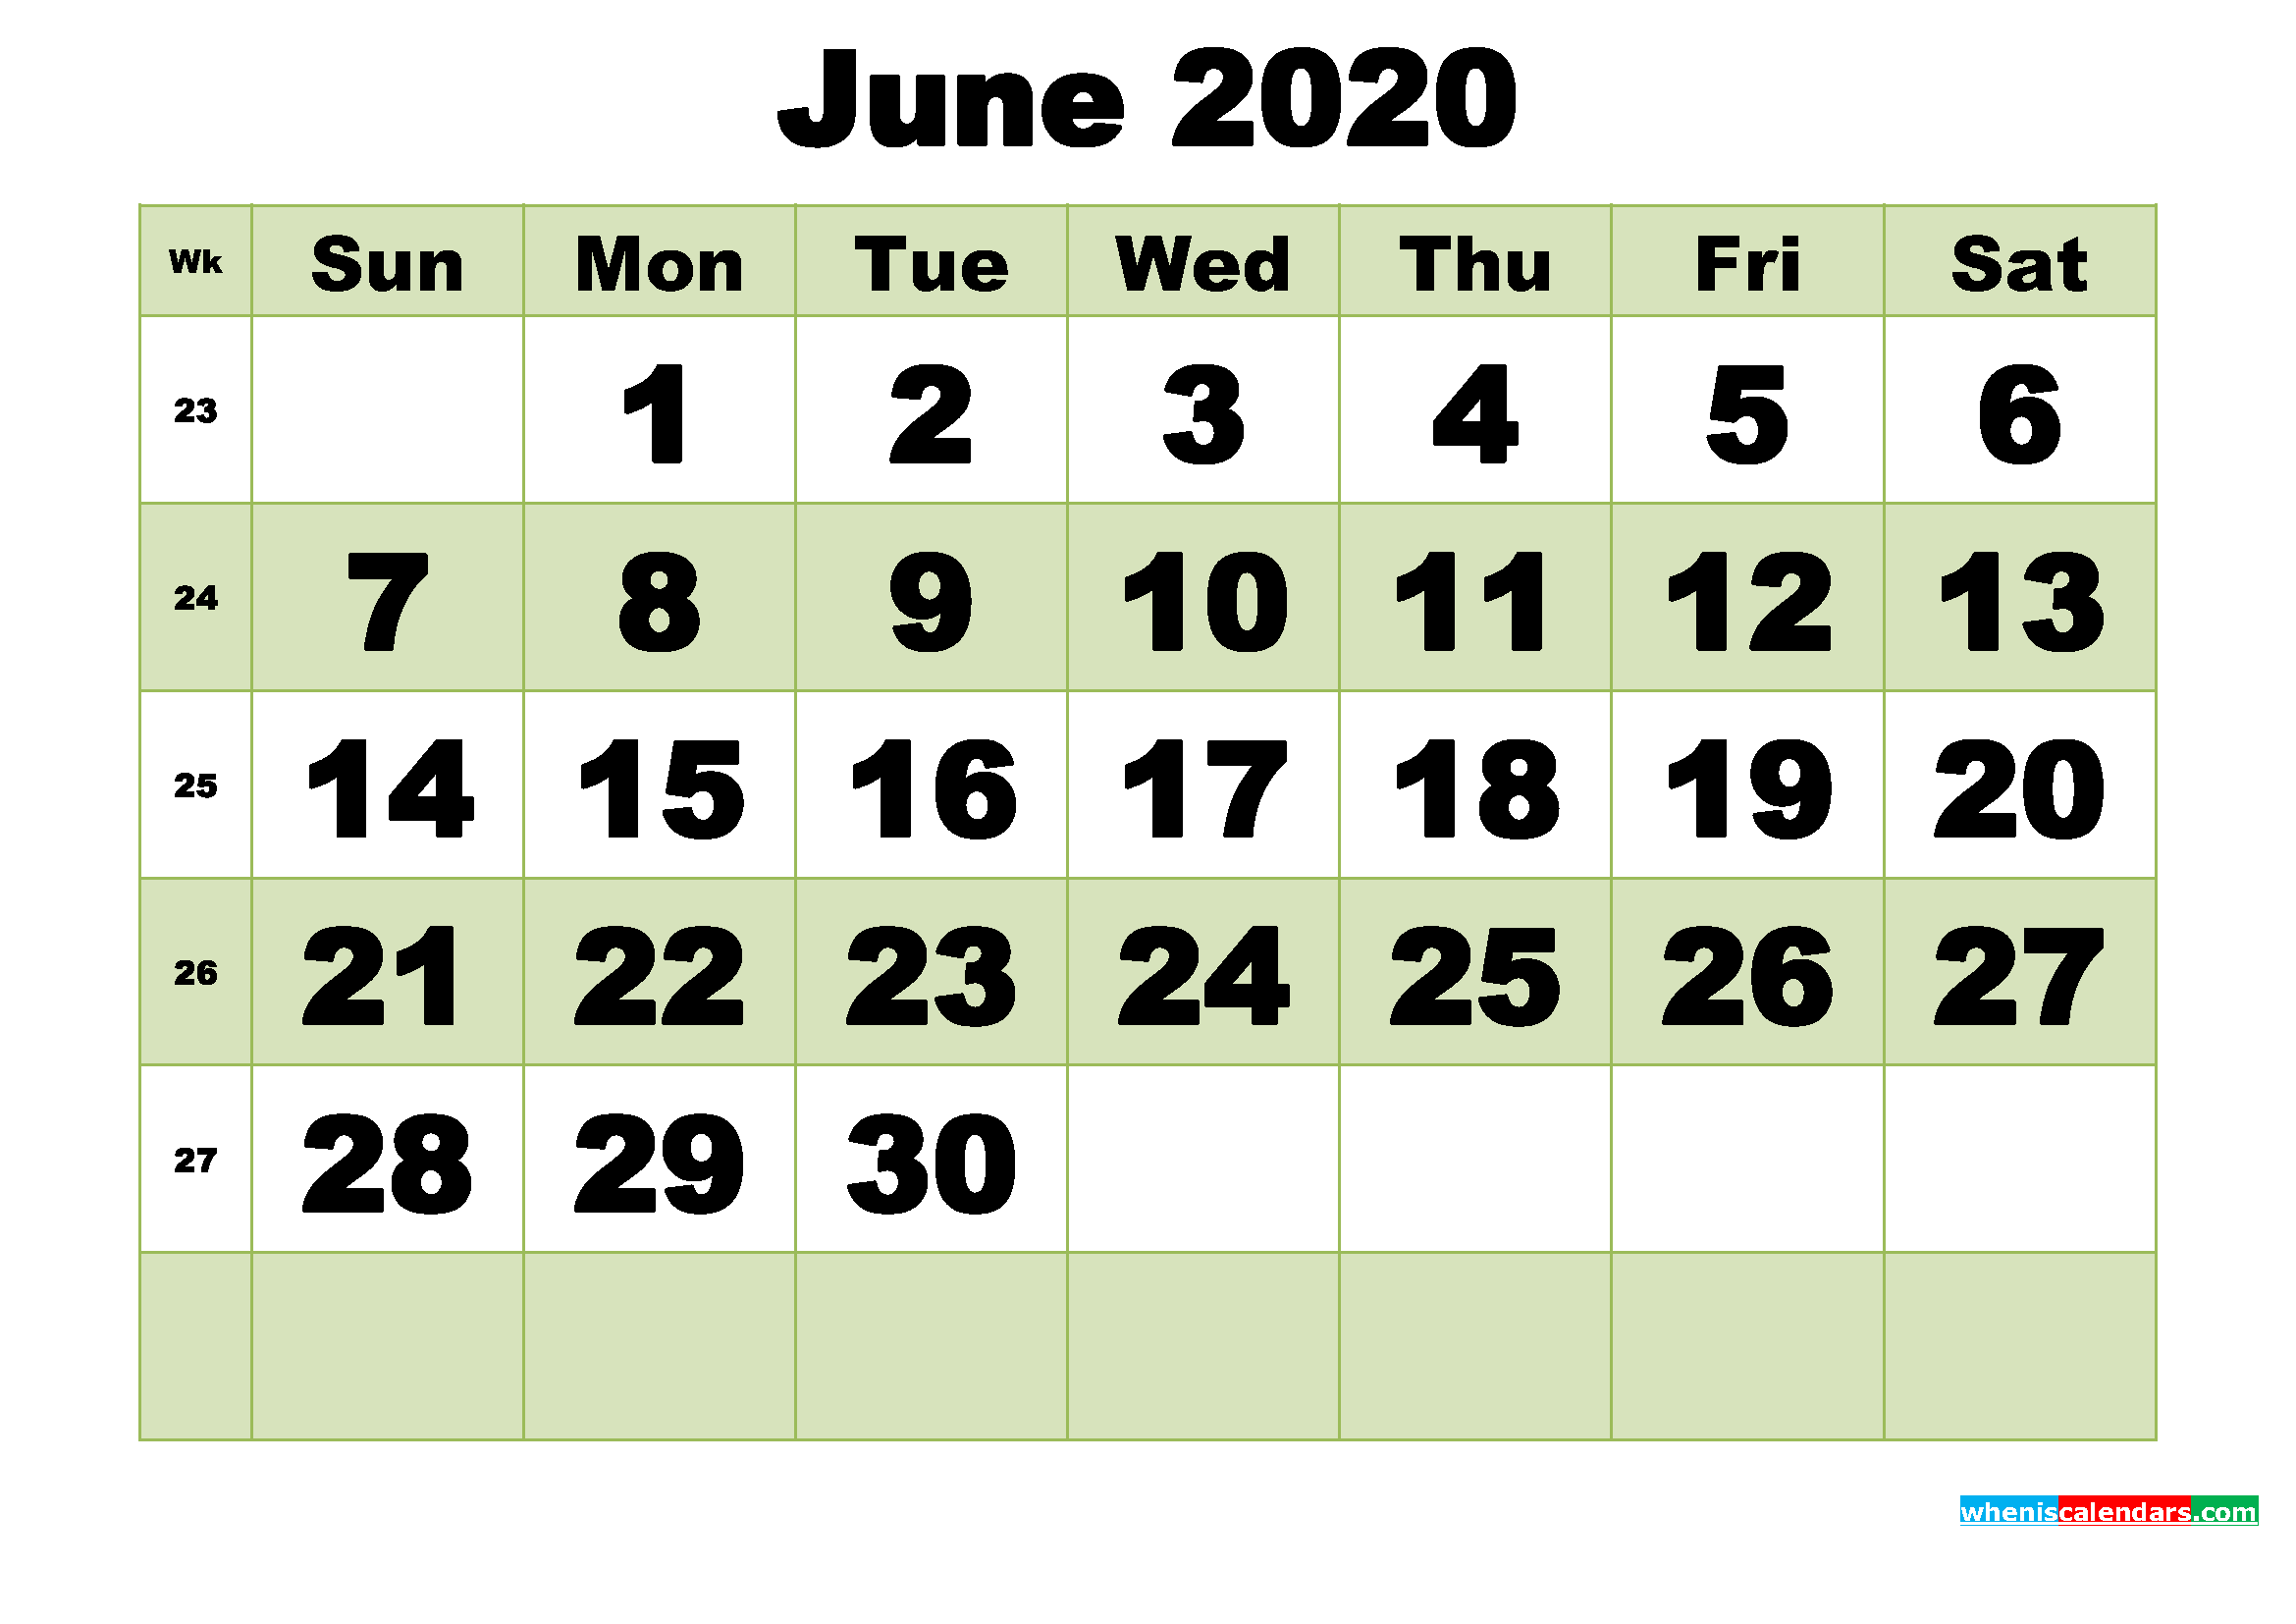 June 2020 Printable Calendar Template